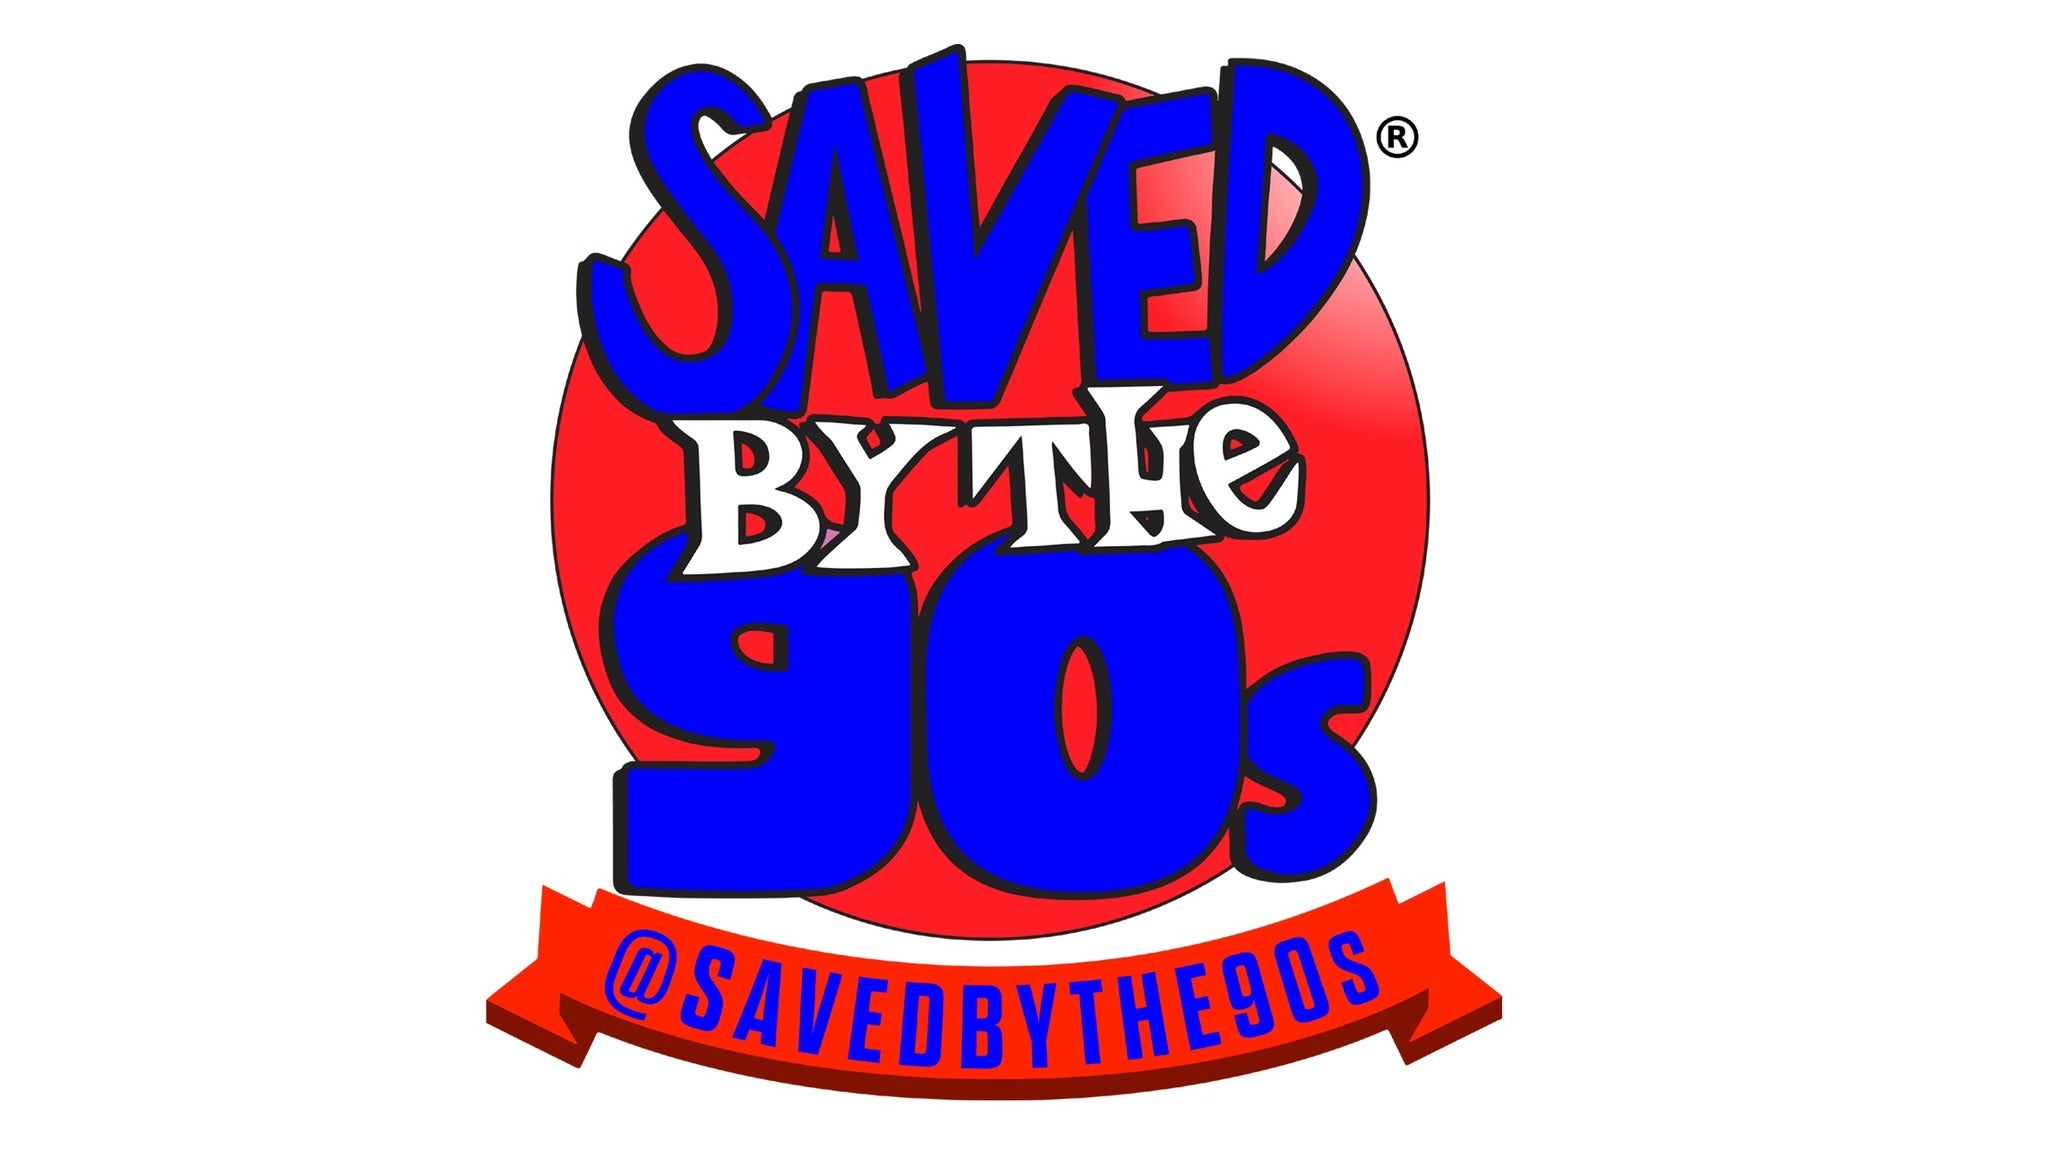 Saved By The 90's at Constellation Room